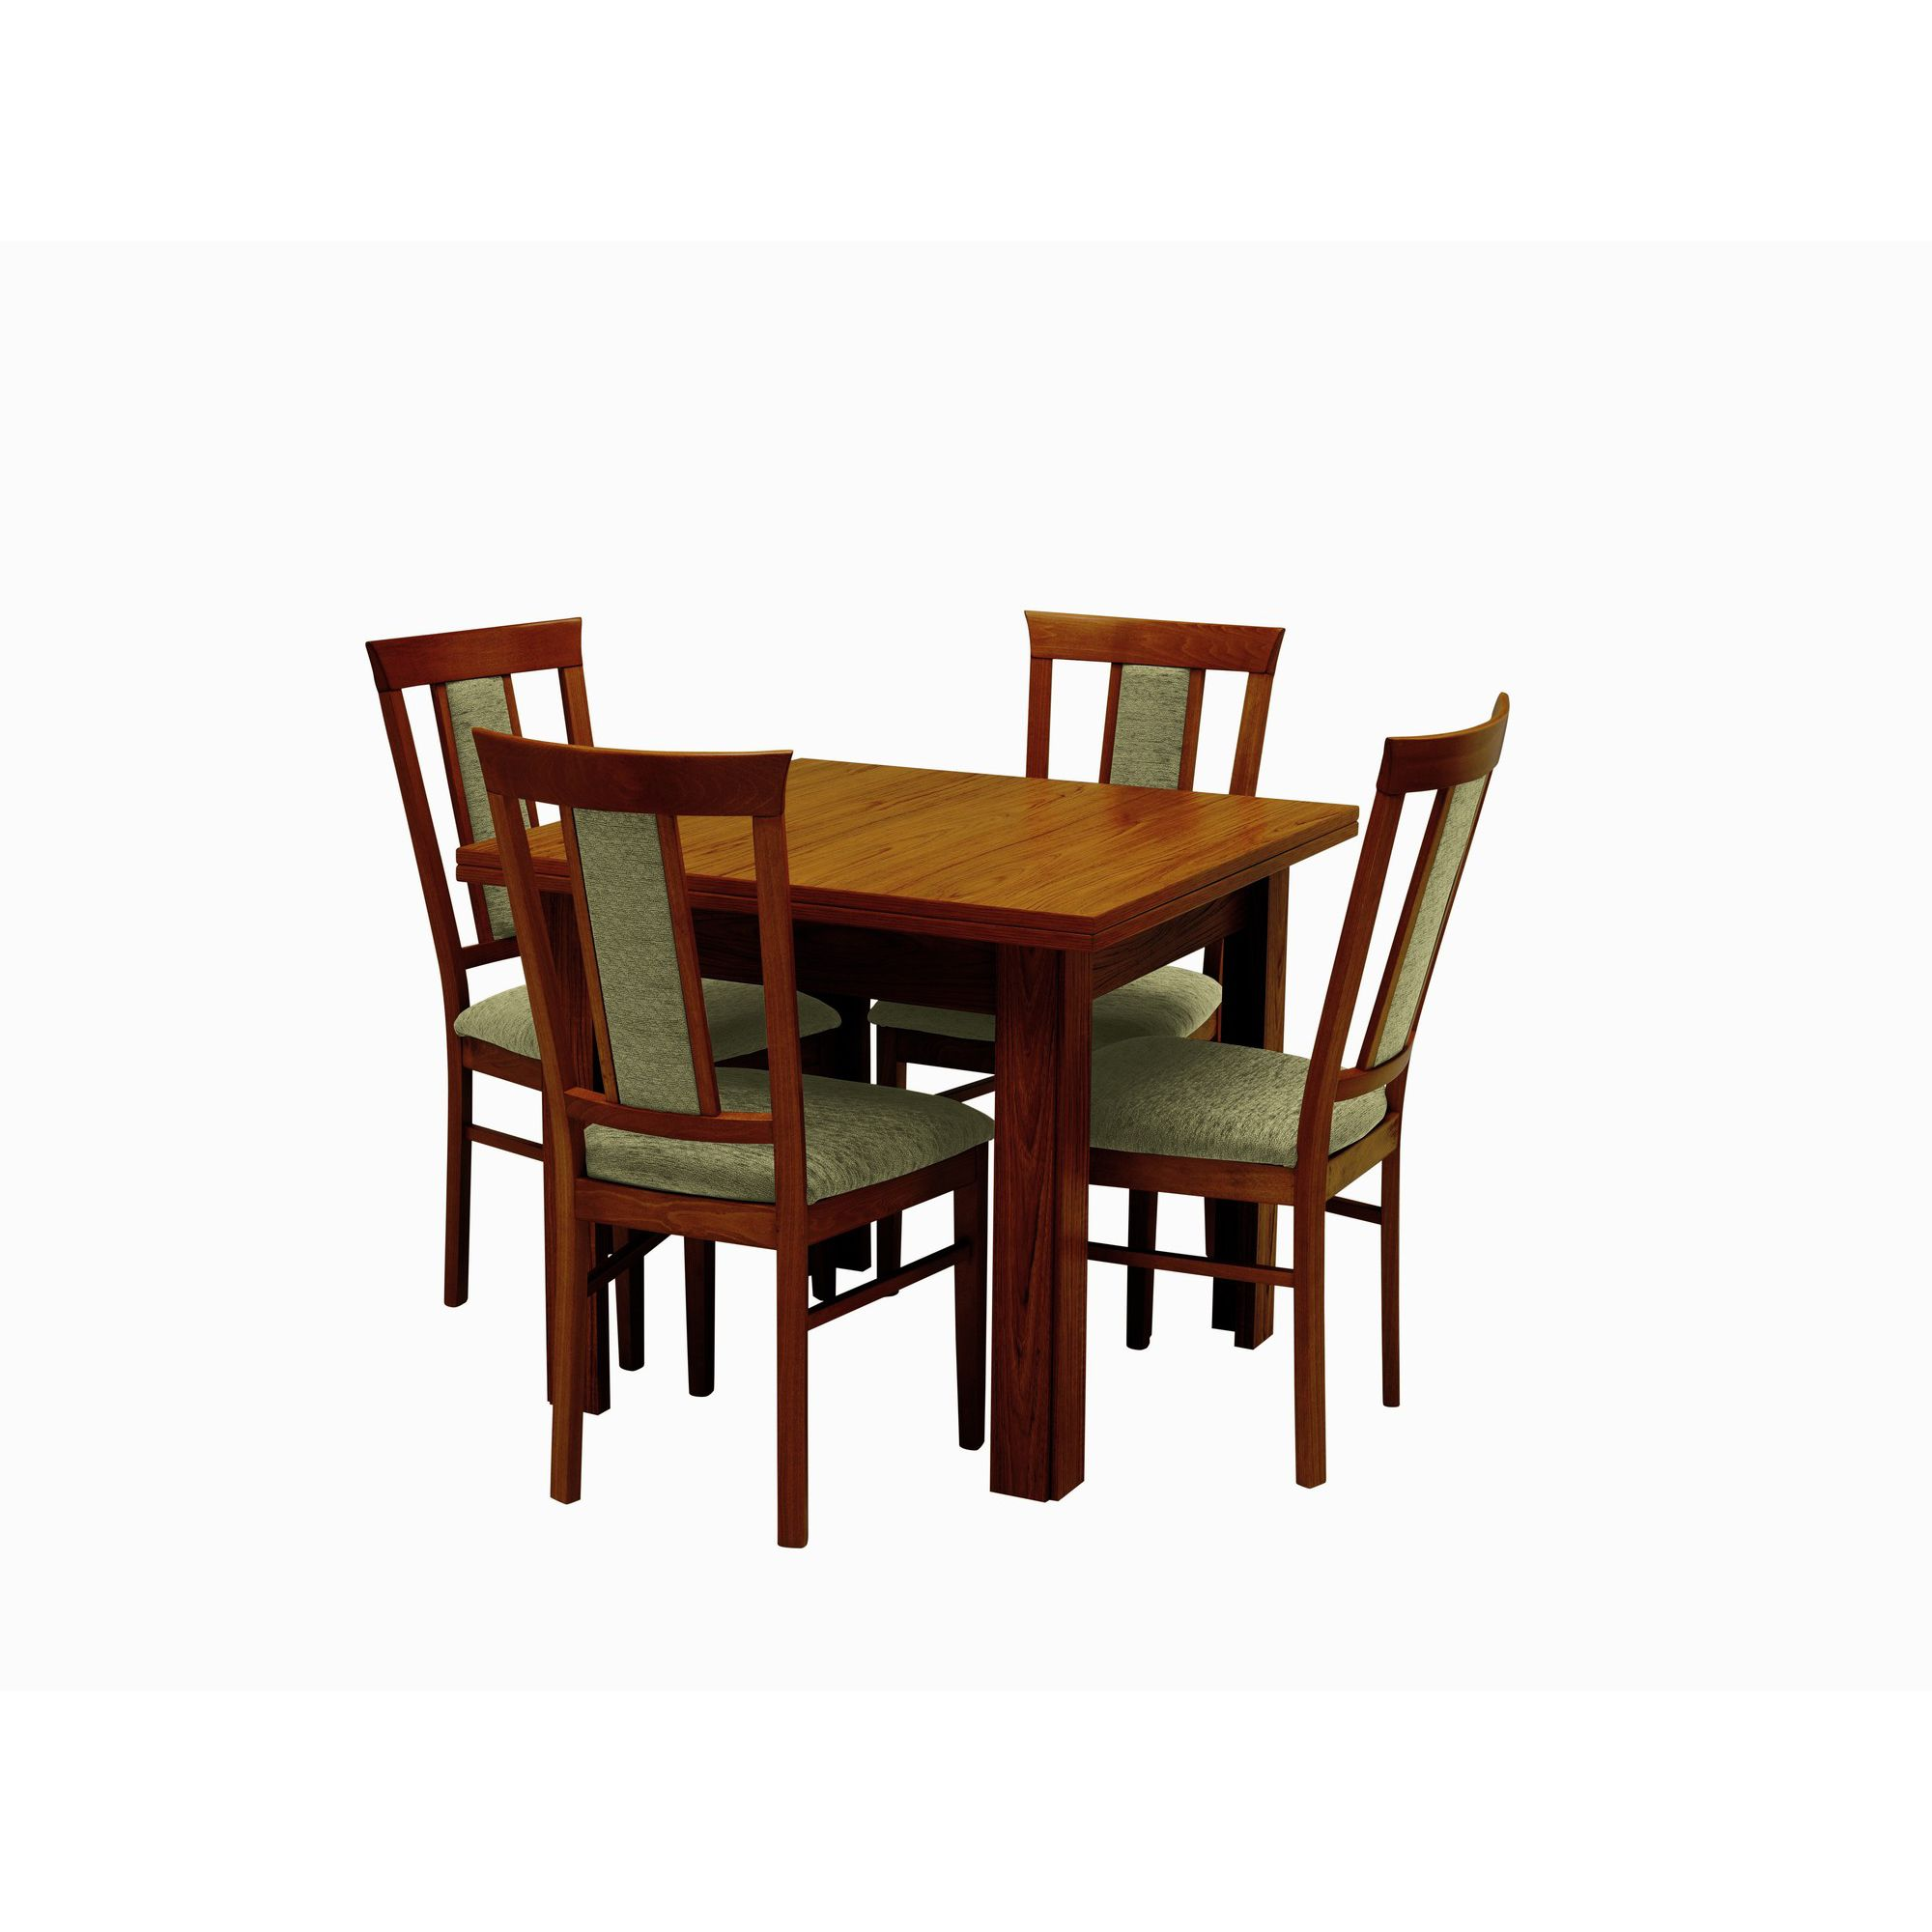 Caxton Byron Extending Dining Set with Padded Back Chairs in Mahogany - Oyster at Tesco Direct